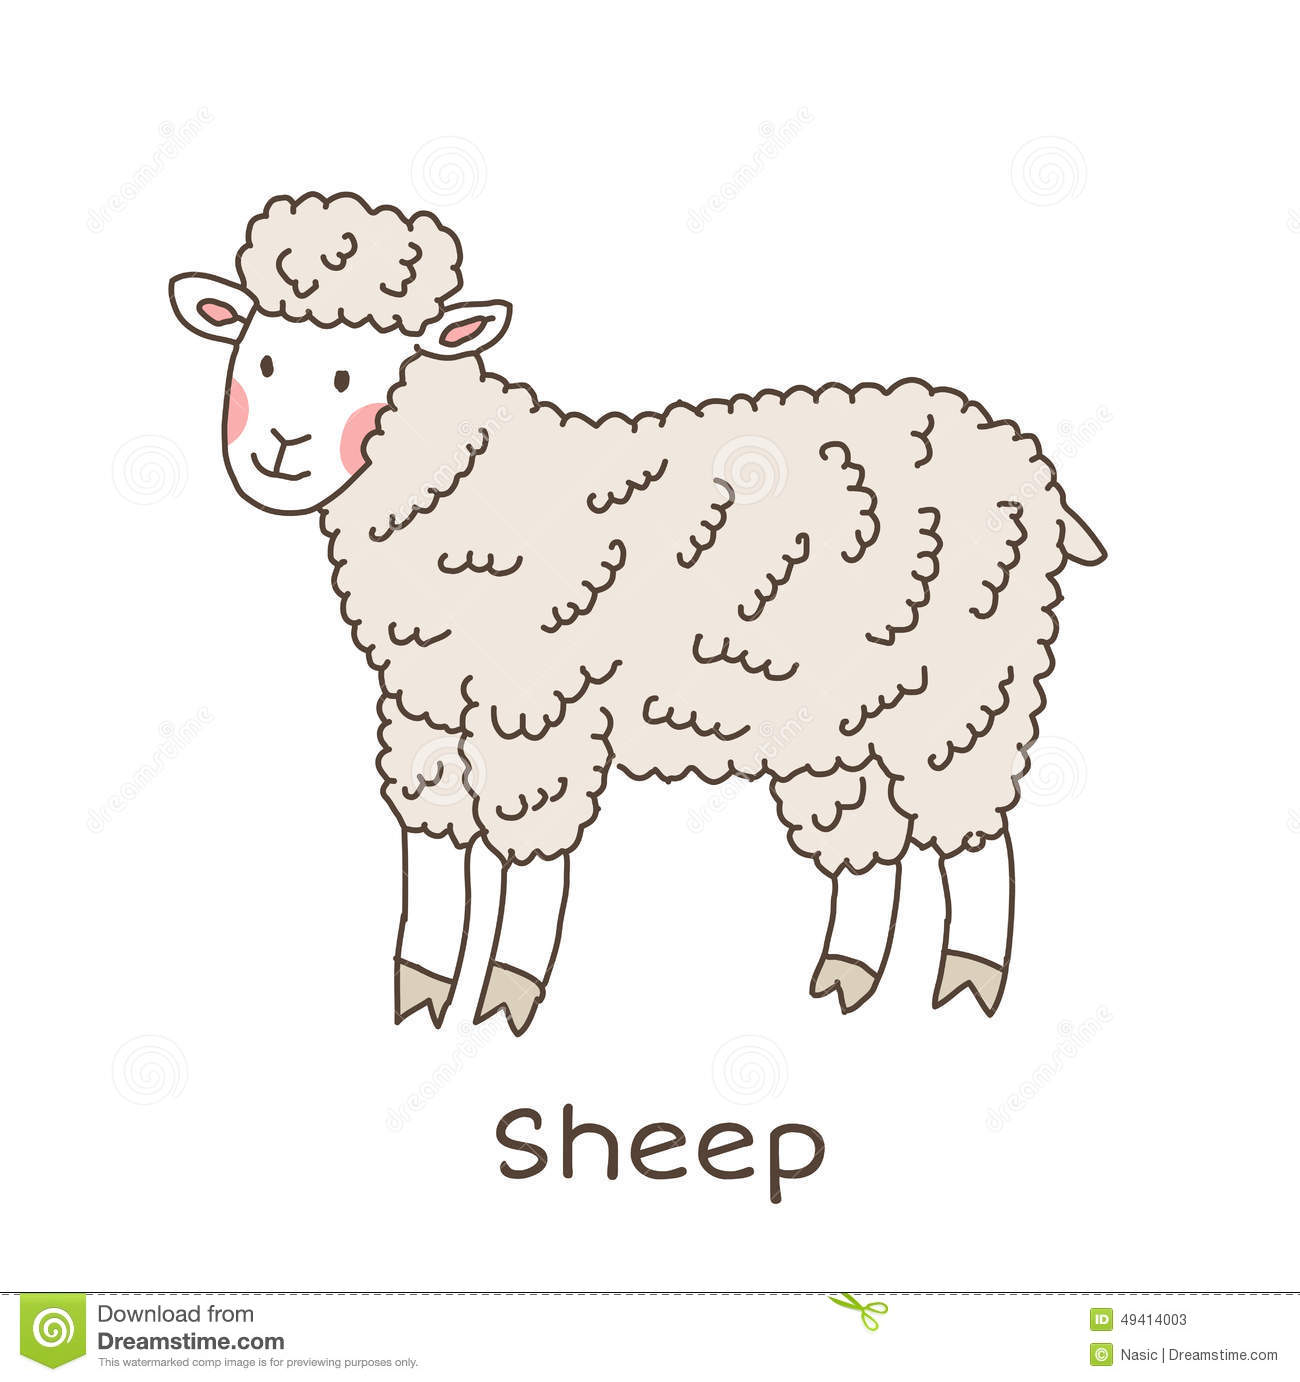 Cute Sheep Drawing Tumblr Funny Cartoon Sheep Children Illustration Stock Vector